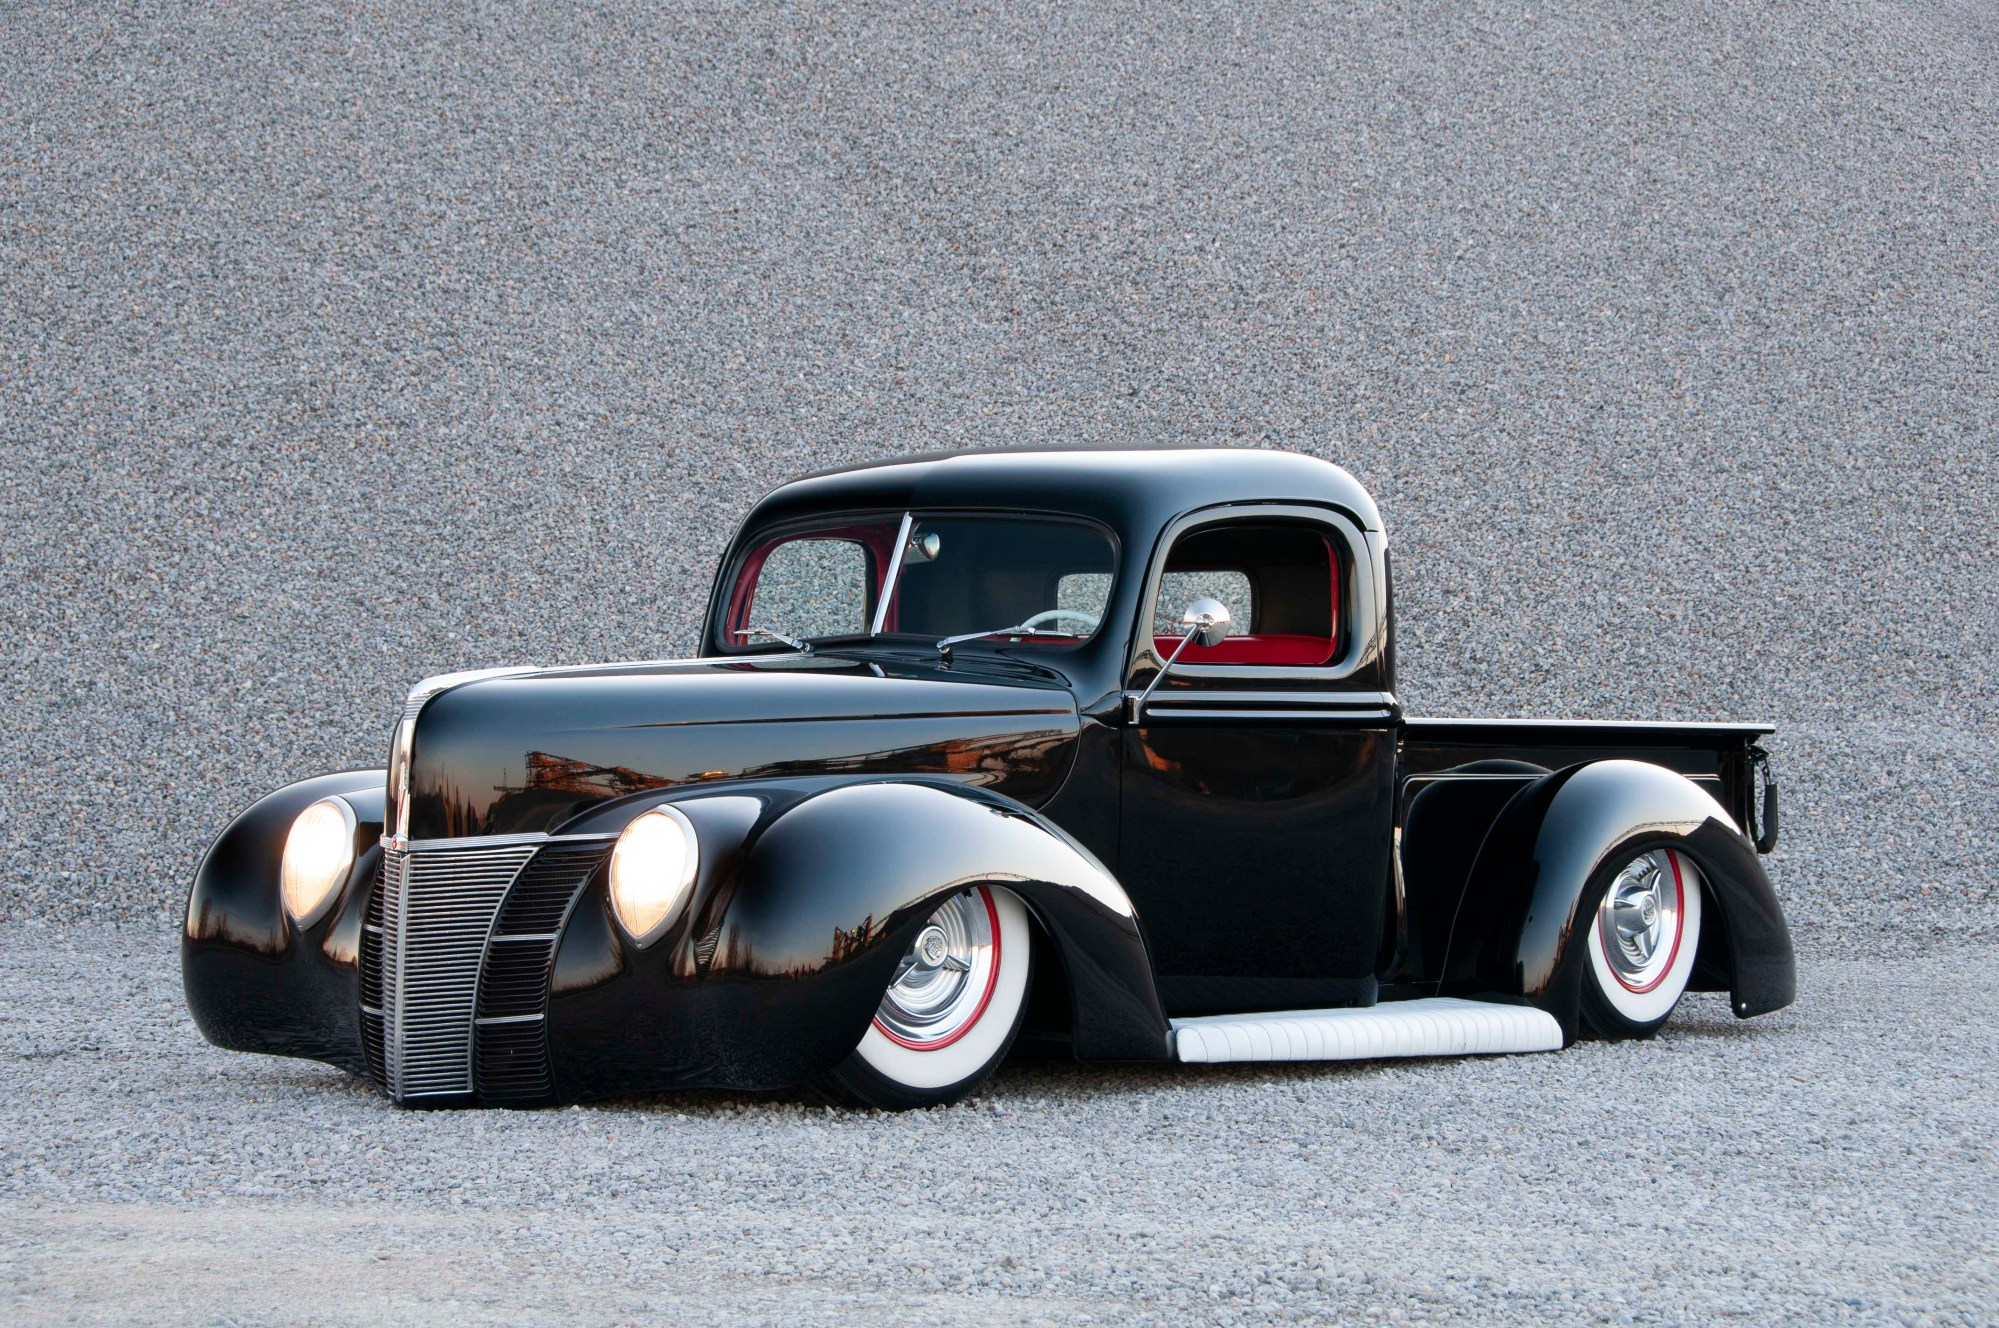 hight resolution of this 1940 ford pickup was homebuilt with friends and family hot